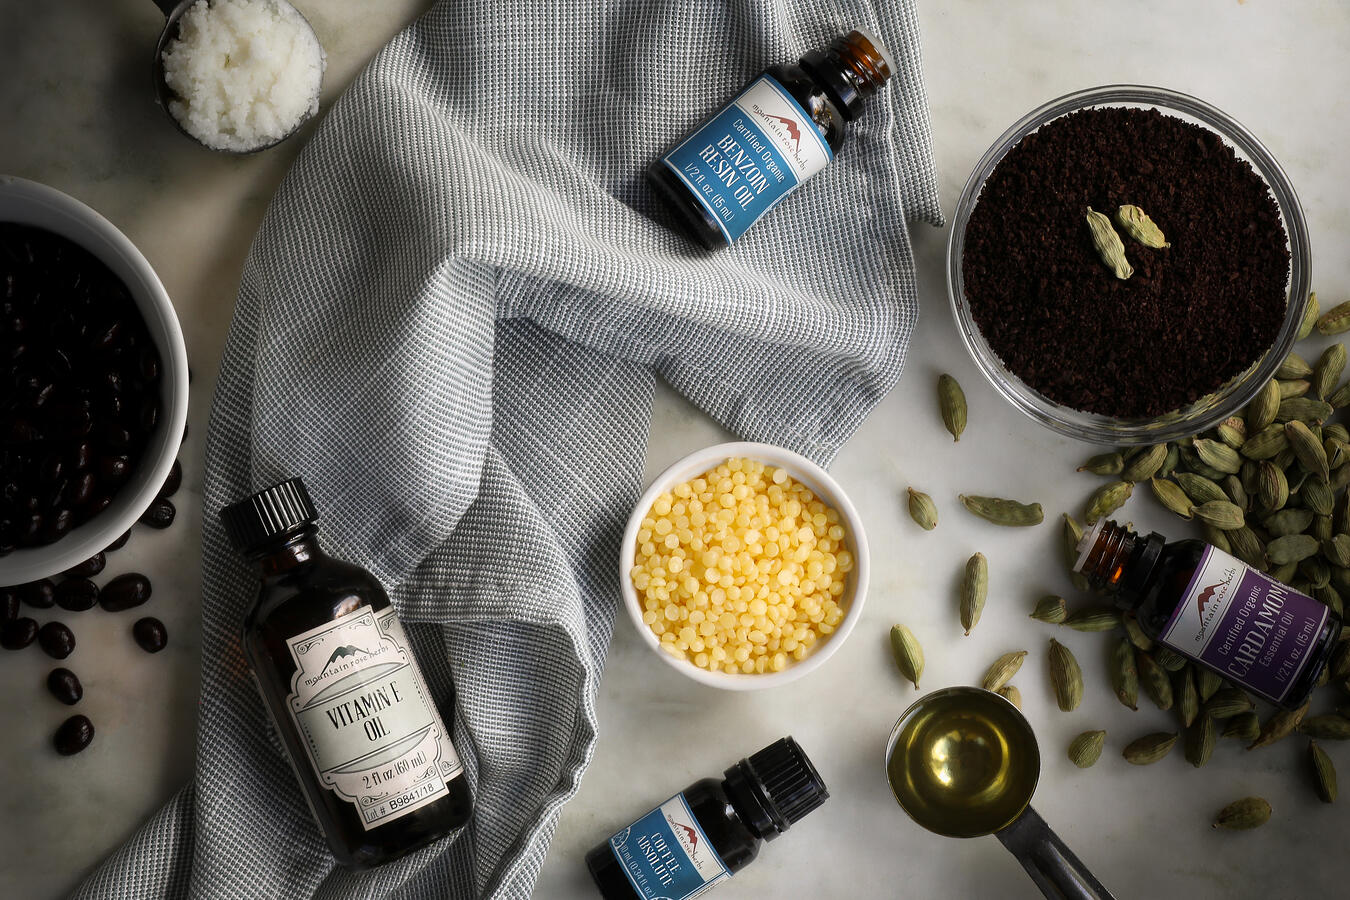 Ingredients to make uplifting coffee cardamom lip balm laid out on a table, including coffee beans, cardamom pods, vitamin e oil, essential oils and beeswax pastilles.